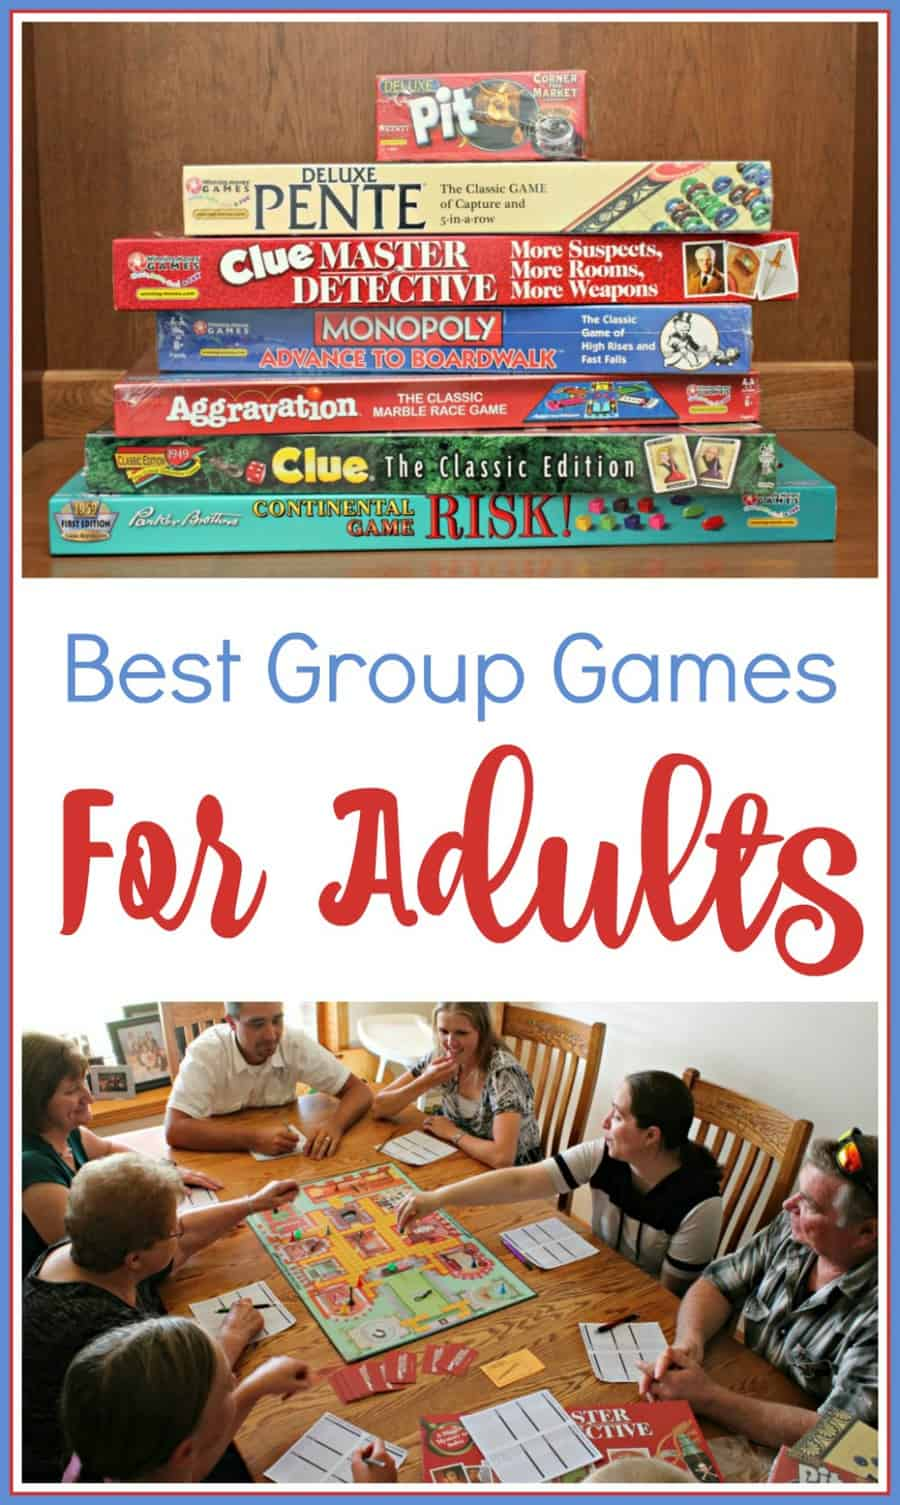 Best Group Games For Adults (Winning Moves Games)